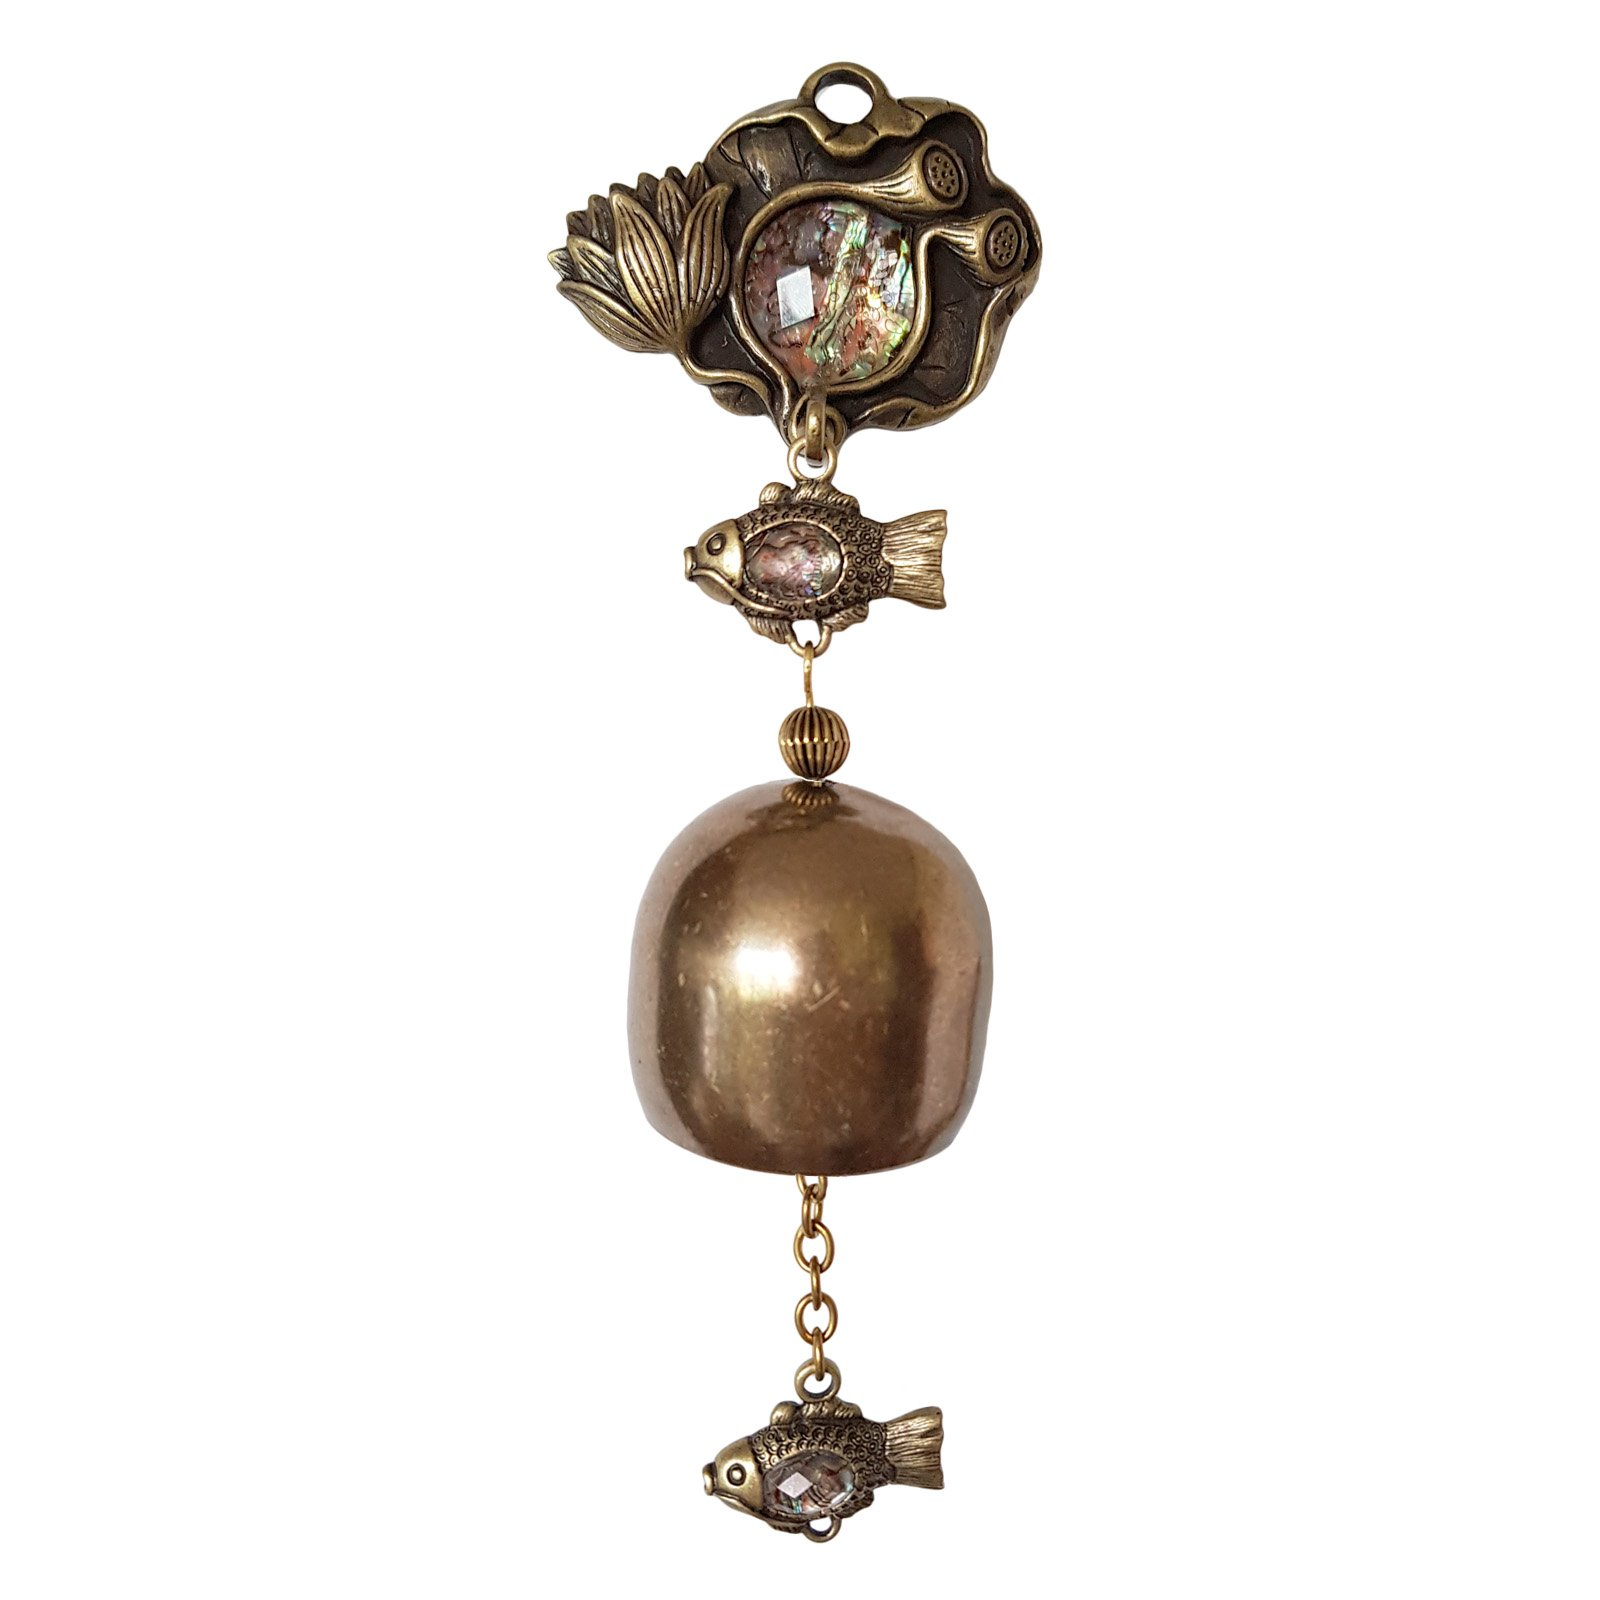 Antique Lotus Shopkeepers Door Bell Store Entry Door Chime Home Decorative One Bell (Mother-of-pearl)